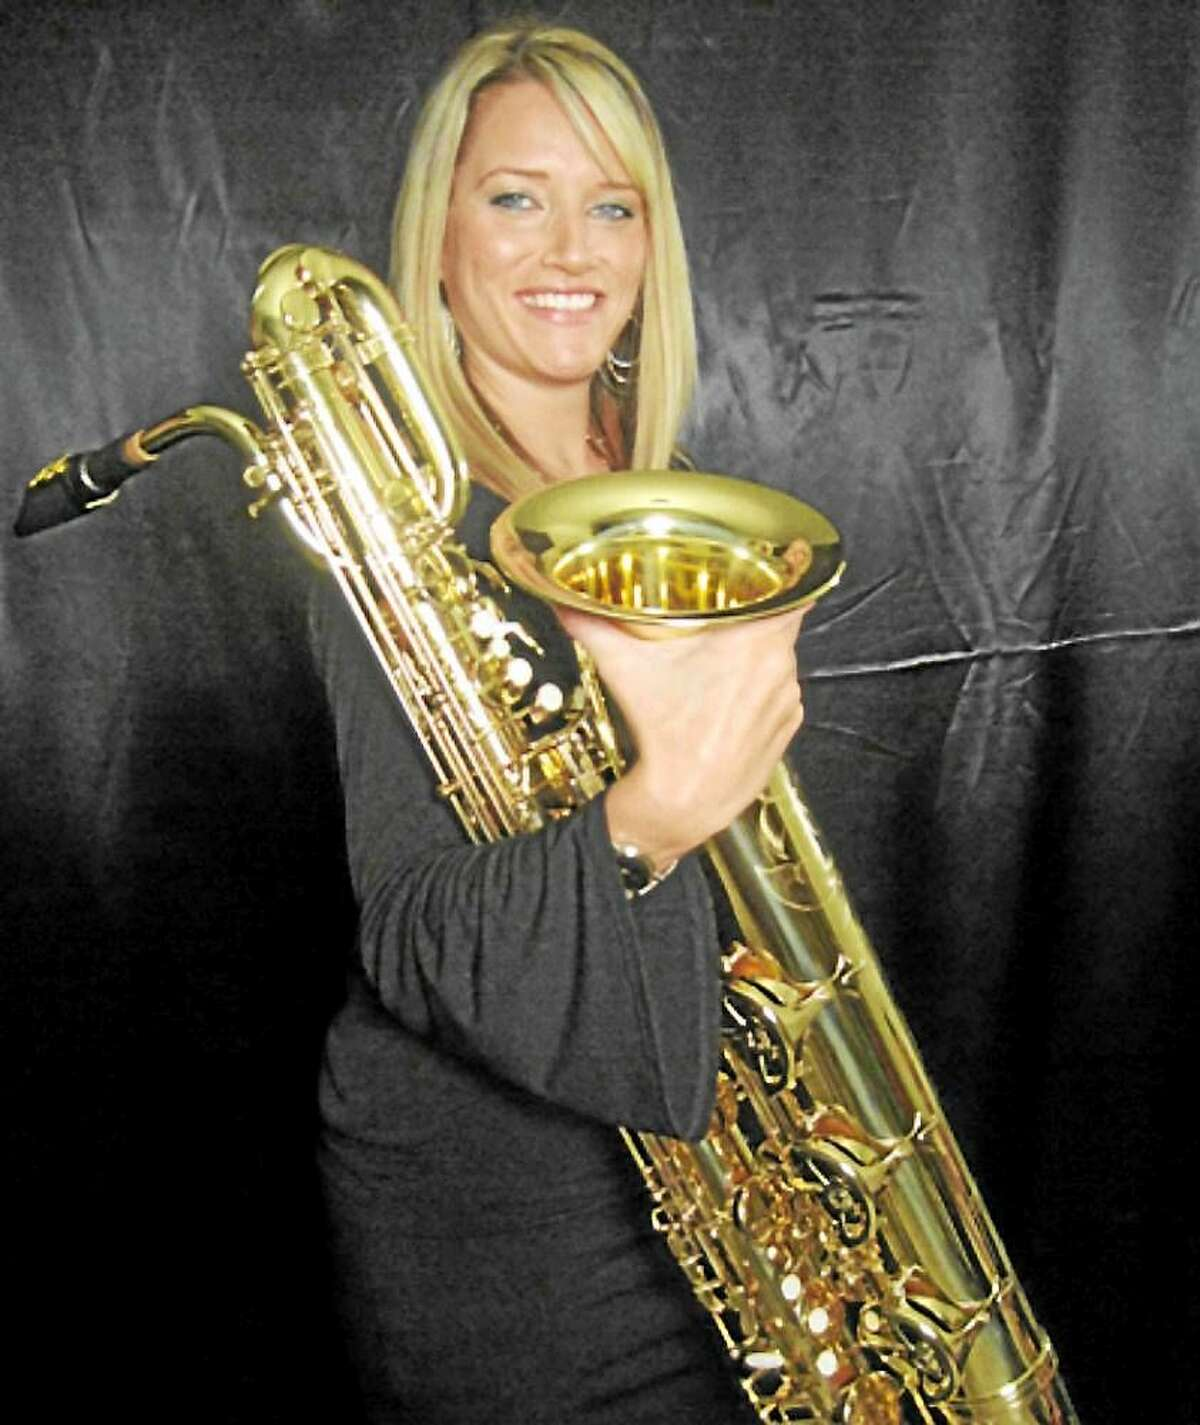 Contributed photo The five part fall jazz series from New England Arts & Entertainment kicks off Friday September 11 at the Palace Theater Poli Club with the Lauren Sevian Quartet.